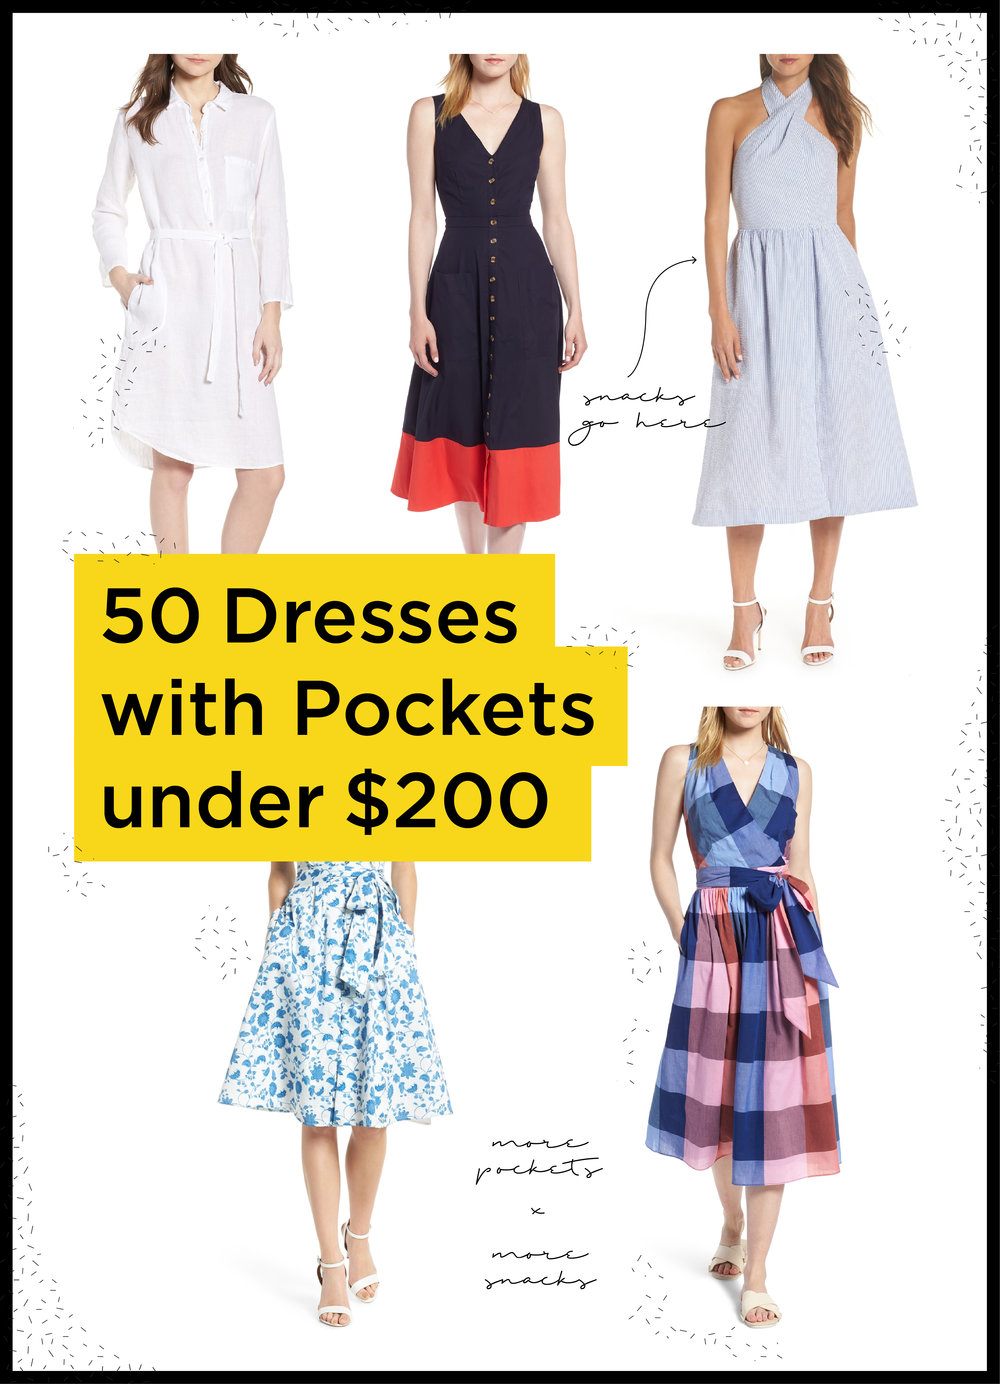 50 dresses under $200 with pockets (for snacks)